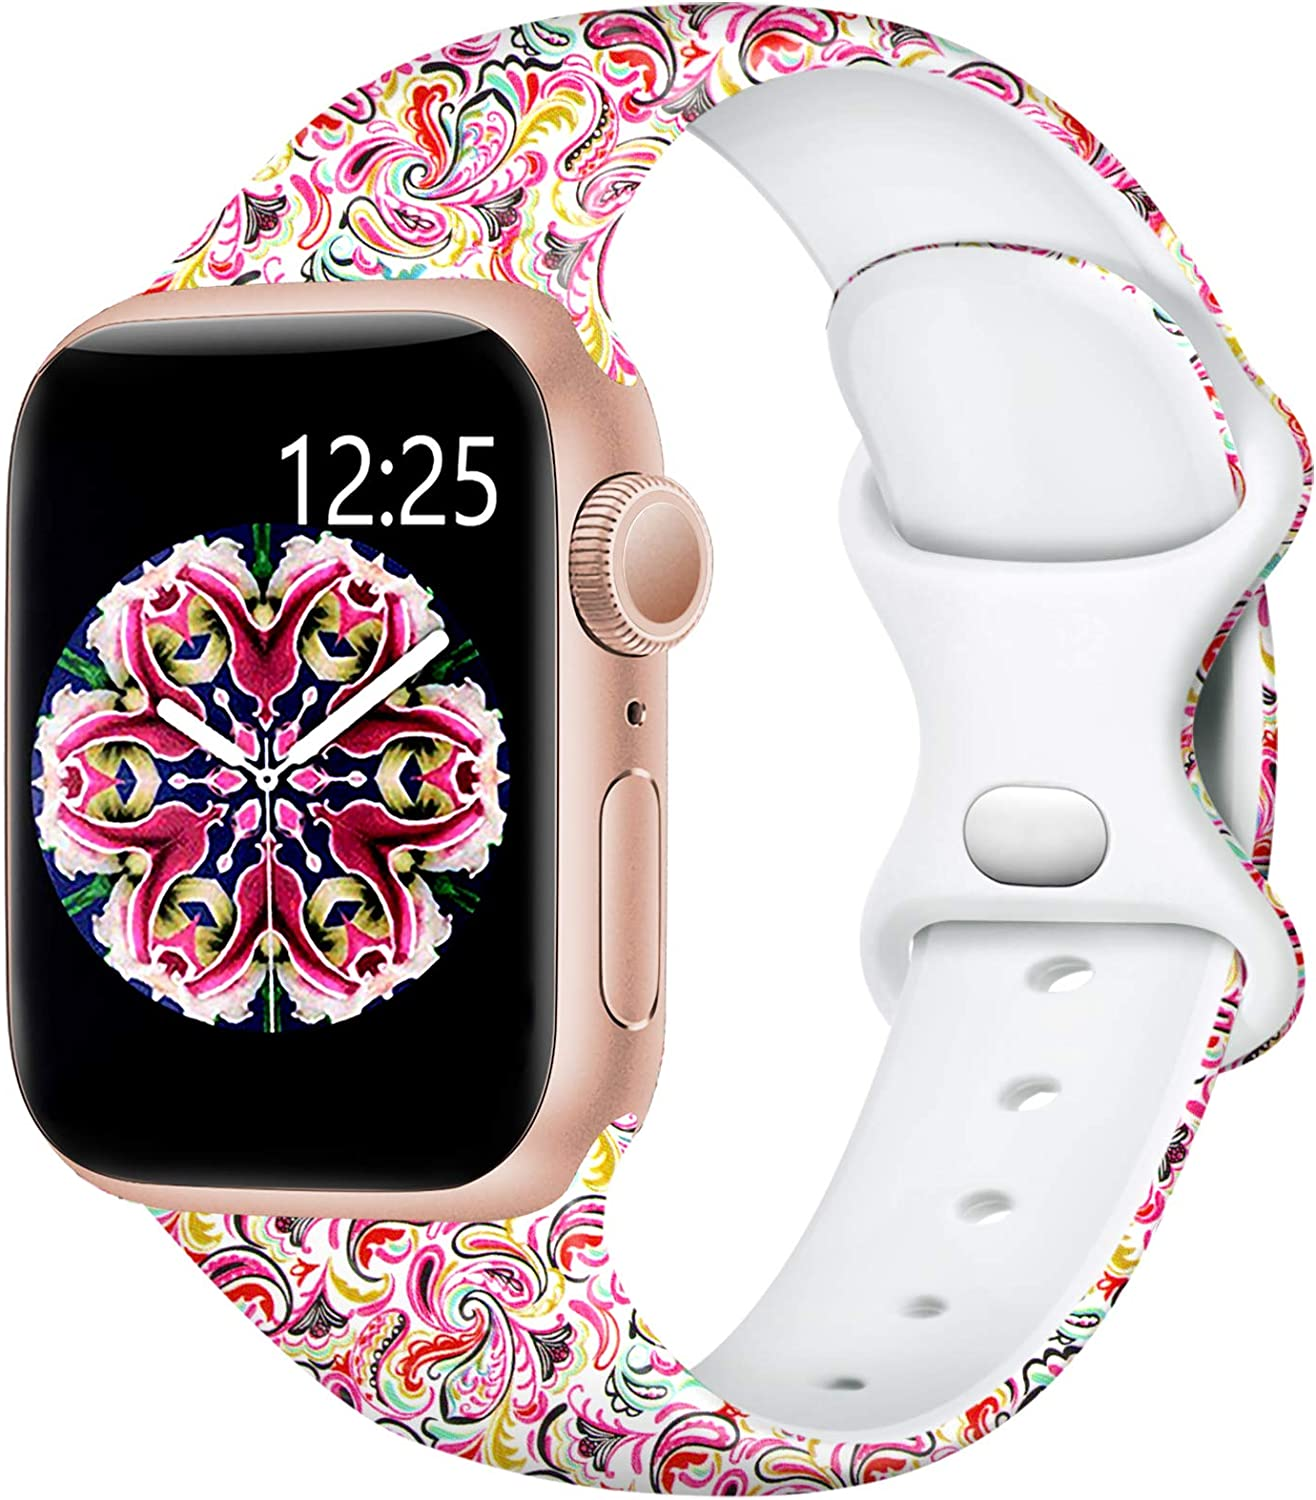 Easuny Compatible for Apple Watch Band 40mm 38mm 44mm 42mm Womens Girls - Cute Fadeless Floral Soft Pattern Printed Silicone Replacement Wristband for iWatch SE & Series 6/5/4/3/2/1